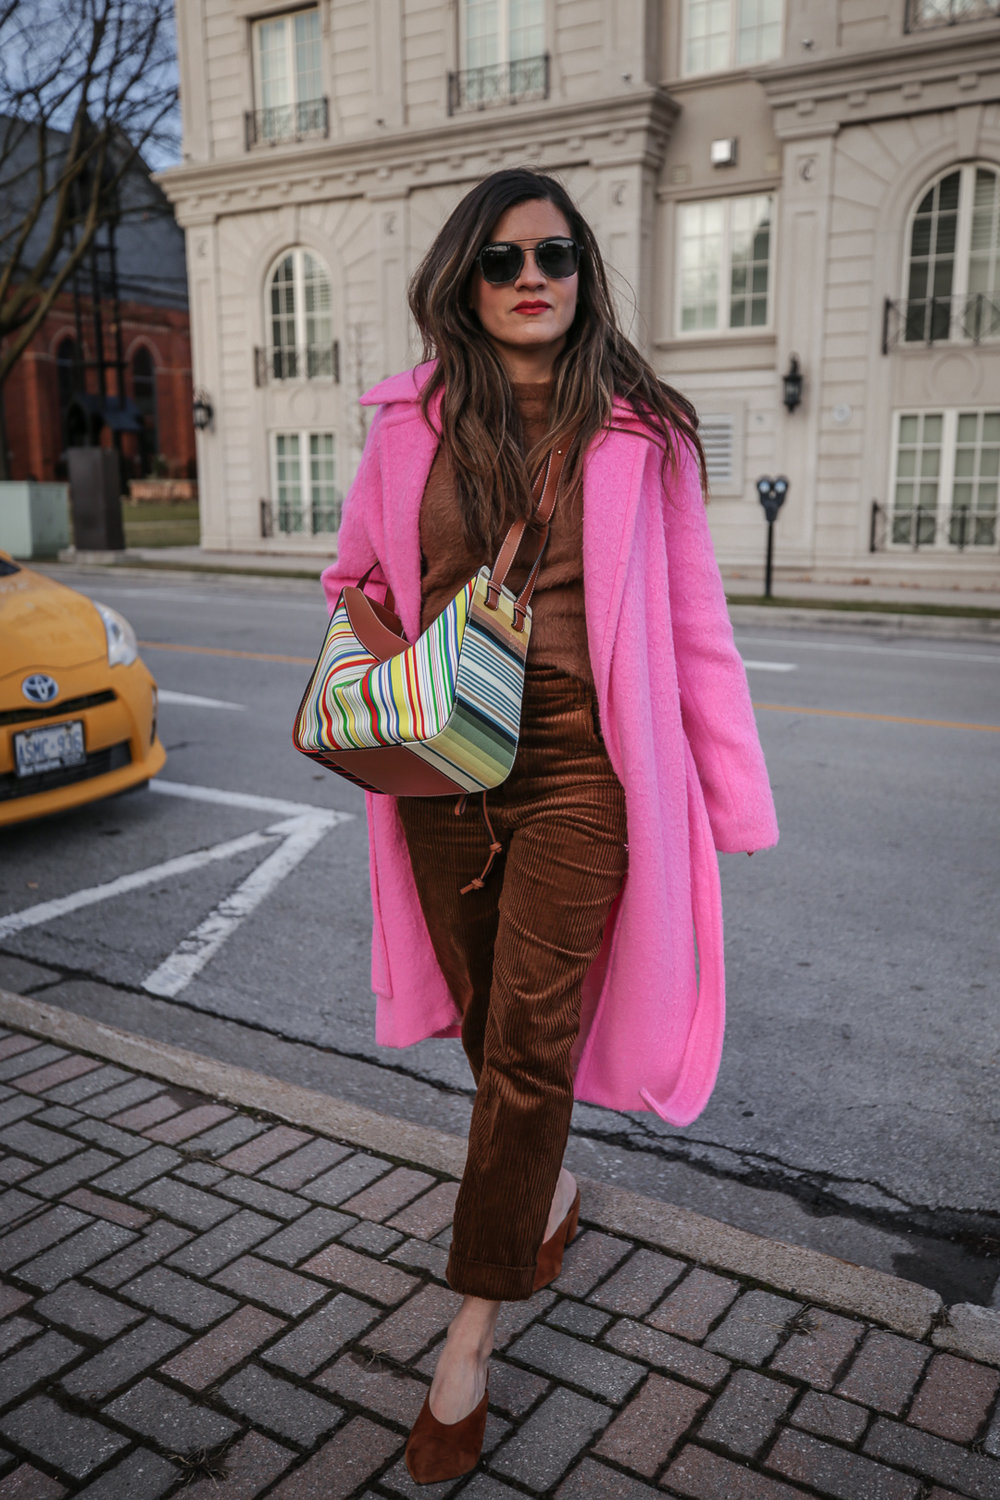 Nathalie Martin wearing Helmut Lang pink belt tie wool coat, brown corduroy pants, Zara brown textured sweater, Prada brown suede mules, Loewe striped Hammock bag, Bonlook Class sunglasses, street style, woahstyle.com_5165.jpg